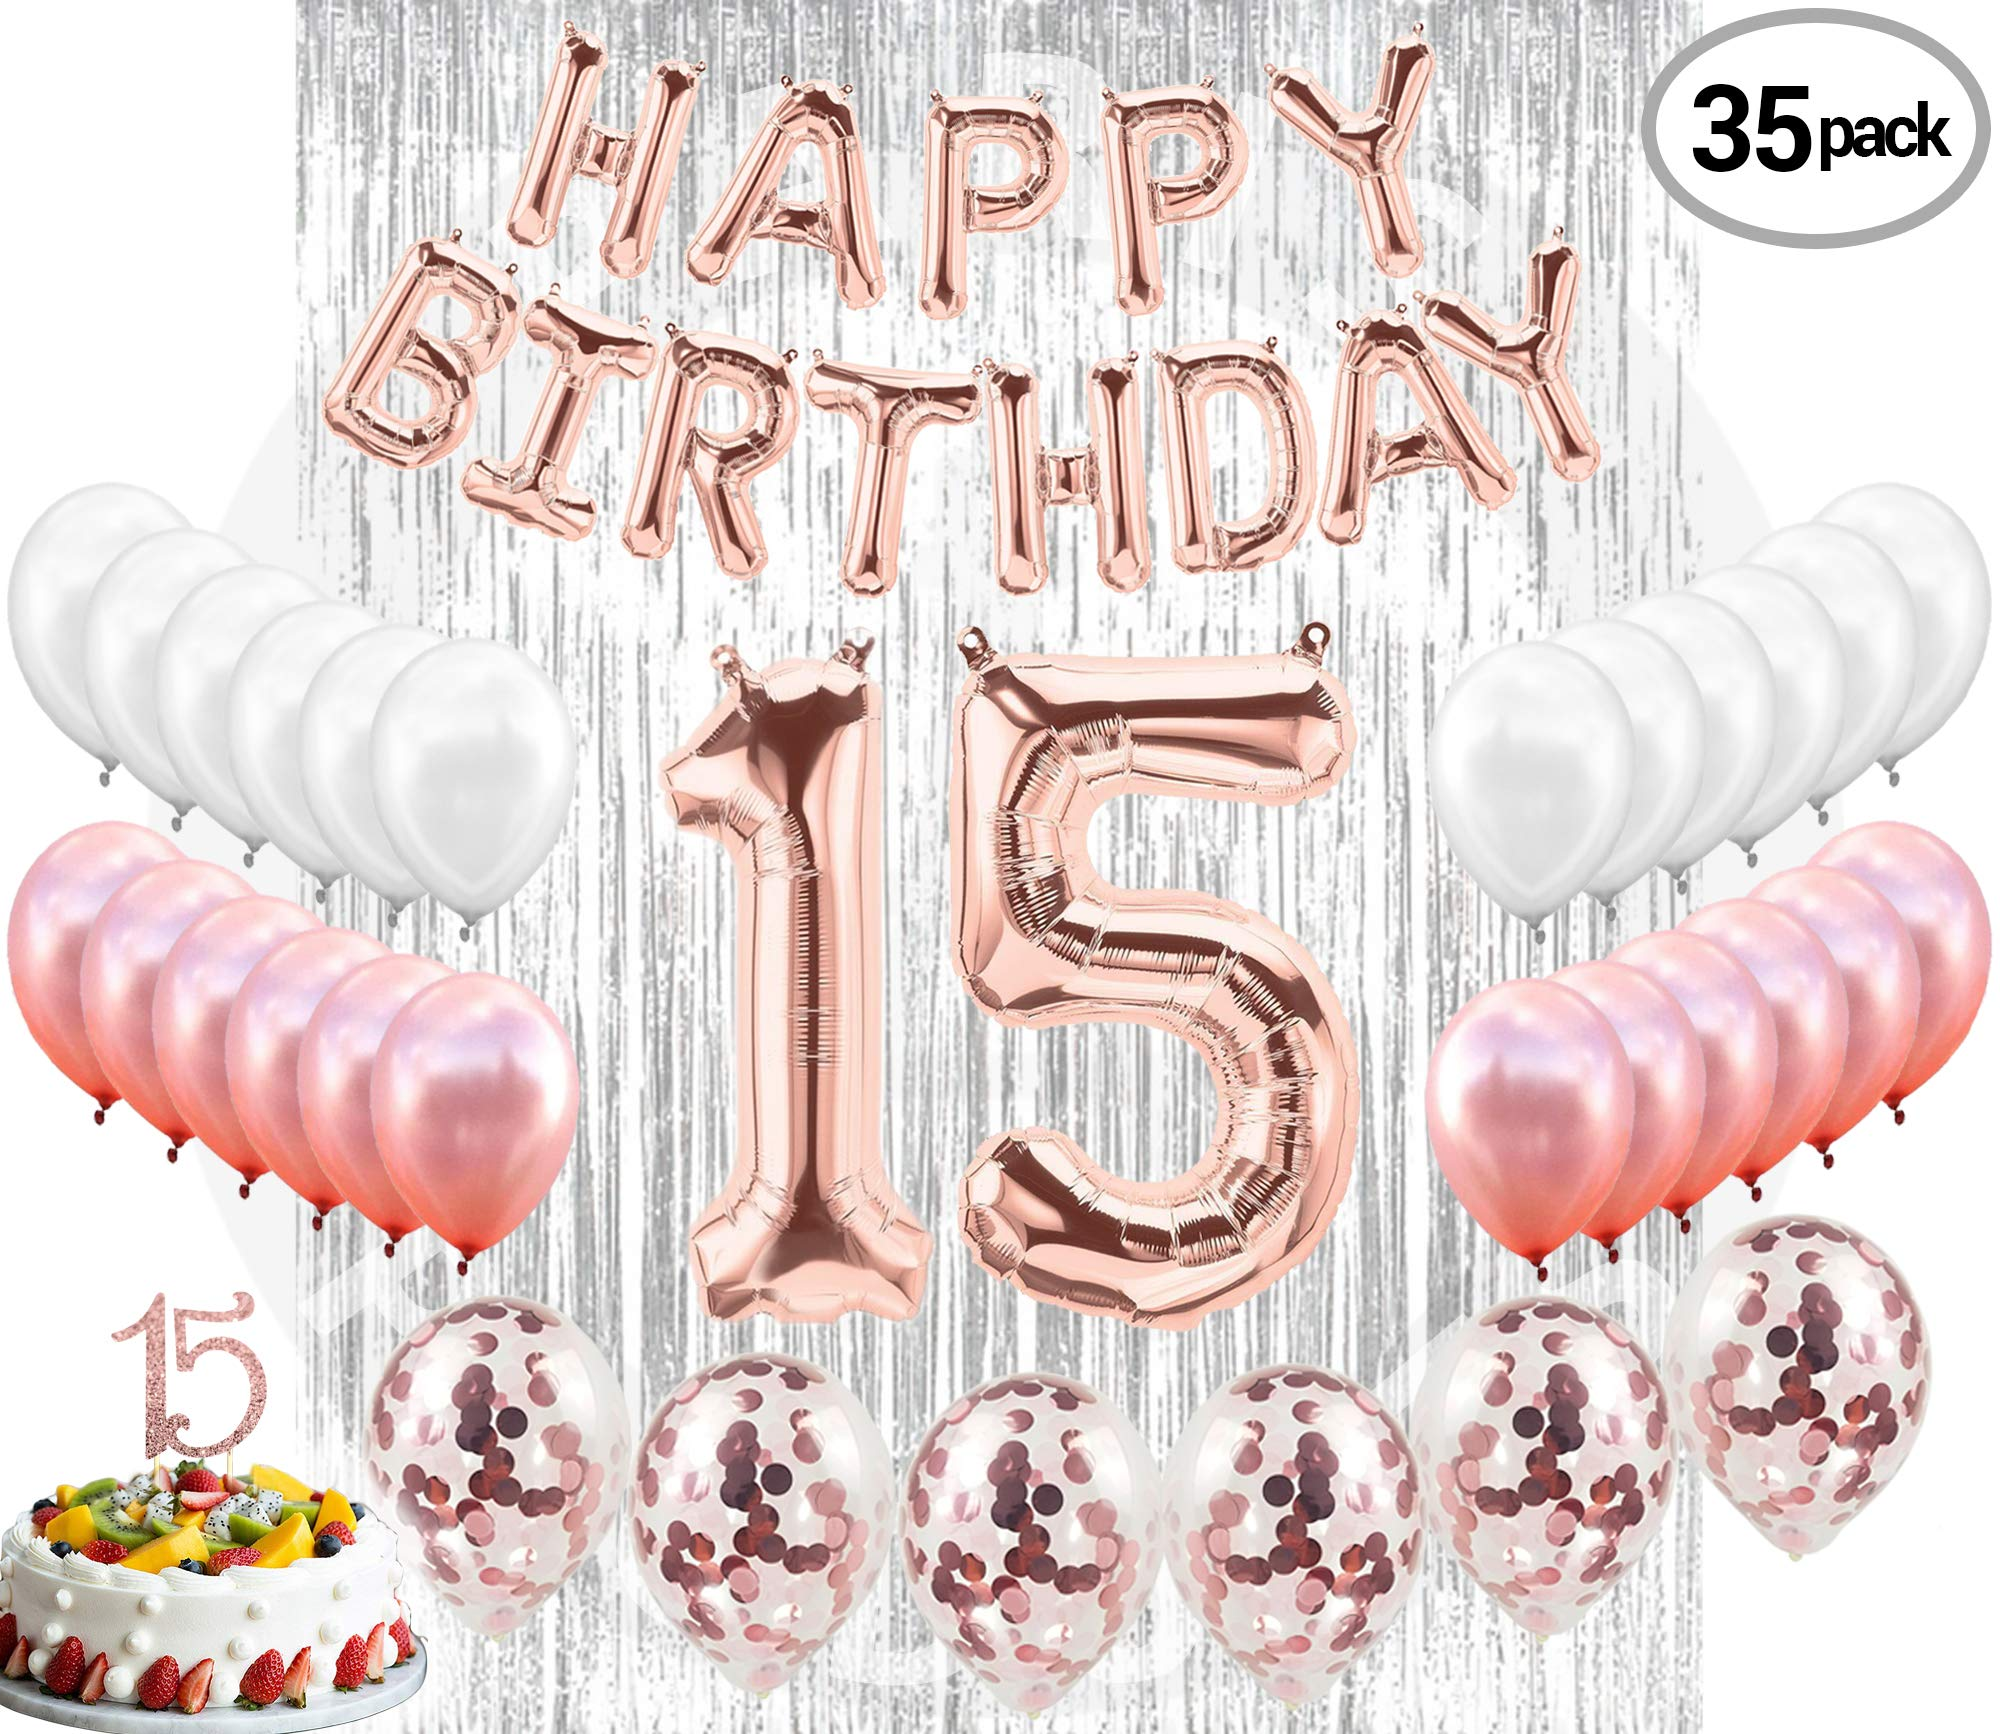 15th BIRTHDAY DECORATIONS| Quinceanera 15 Birthday Party Supplies| 15 Cake Topper Rose Gold| Banner| Rose Gold Confetti Balloons for her Silver Curtain Backdrop Props for Photos 15th Bday